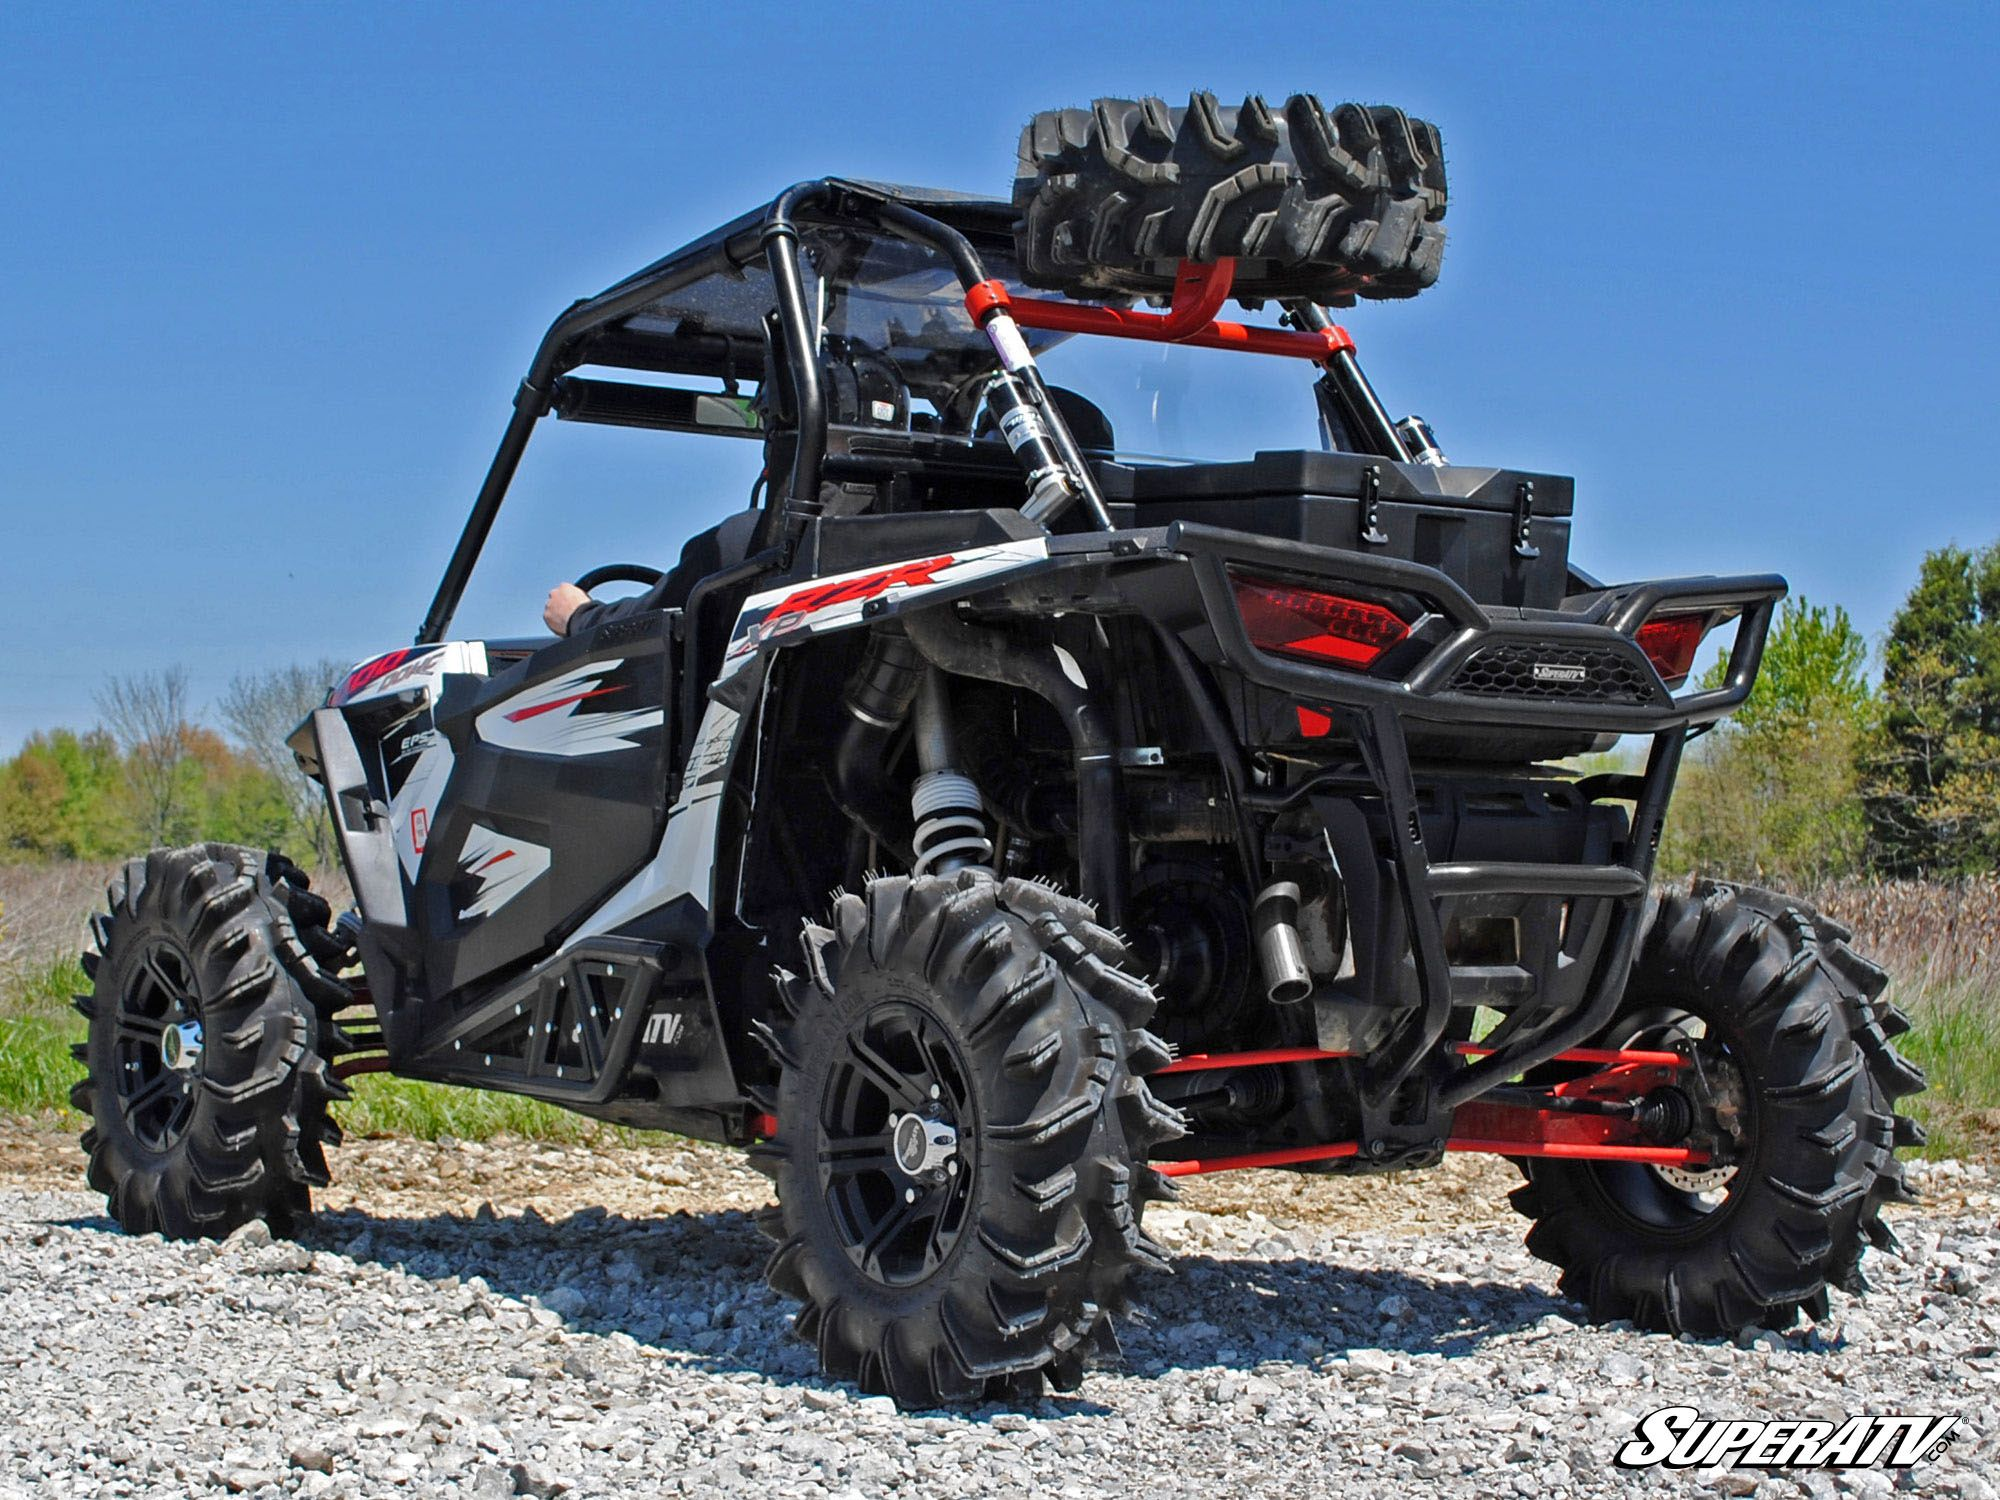 SuperATV provides high quality Performance Parts and Accessories for UTV & ATV designed by riders for riders. Get free shipping on domestic orders. We also .